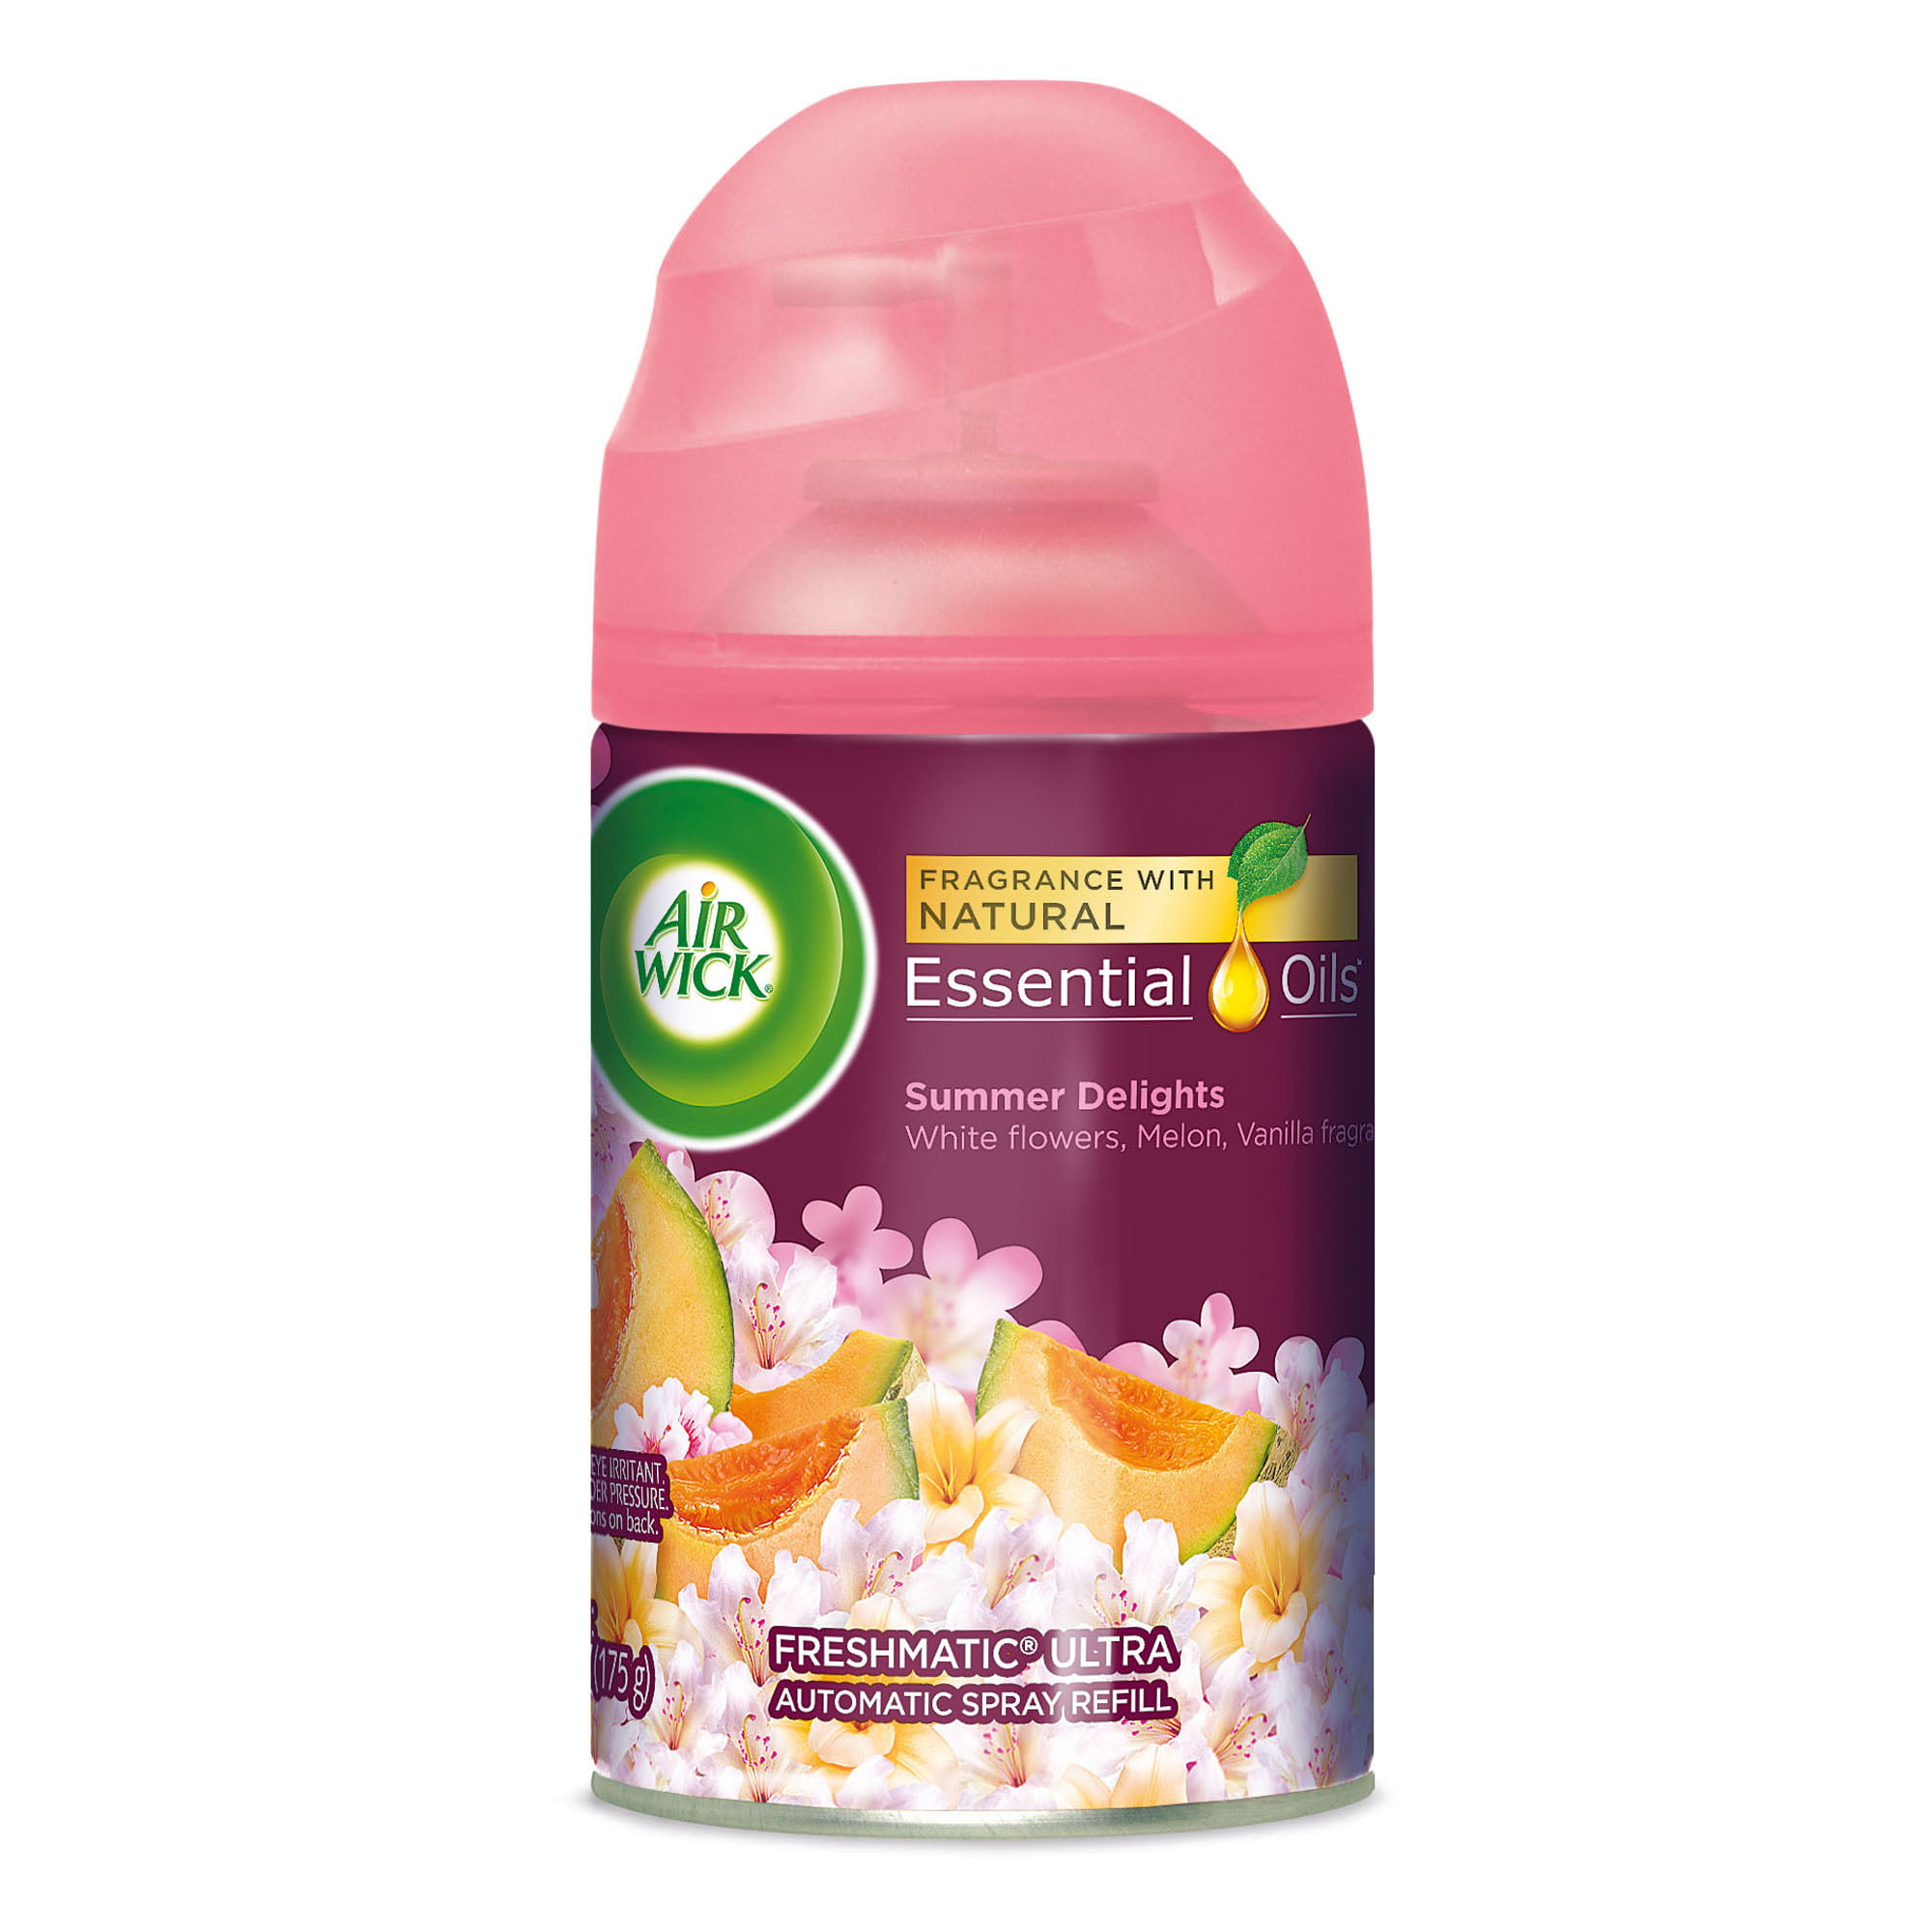 Air Wick Life Scents Freshmatic Refill Automatic Spray